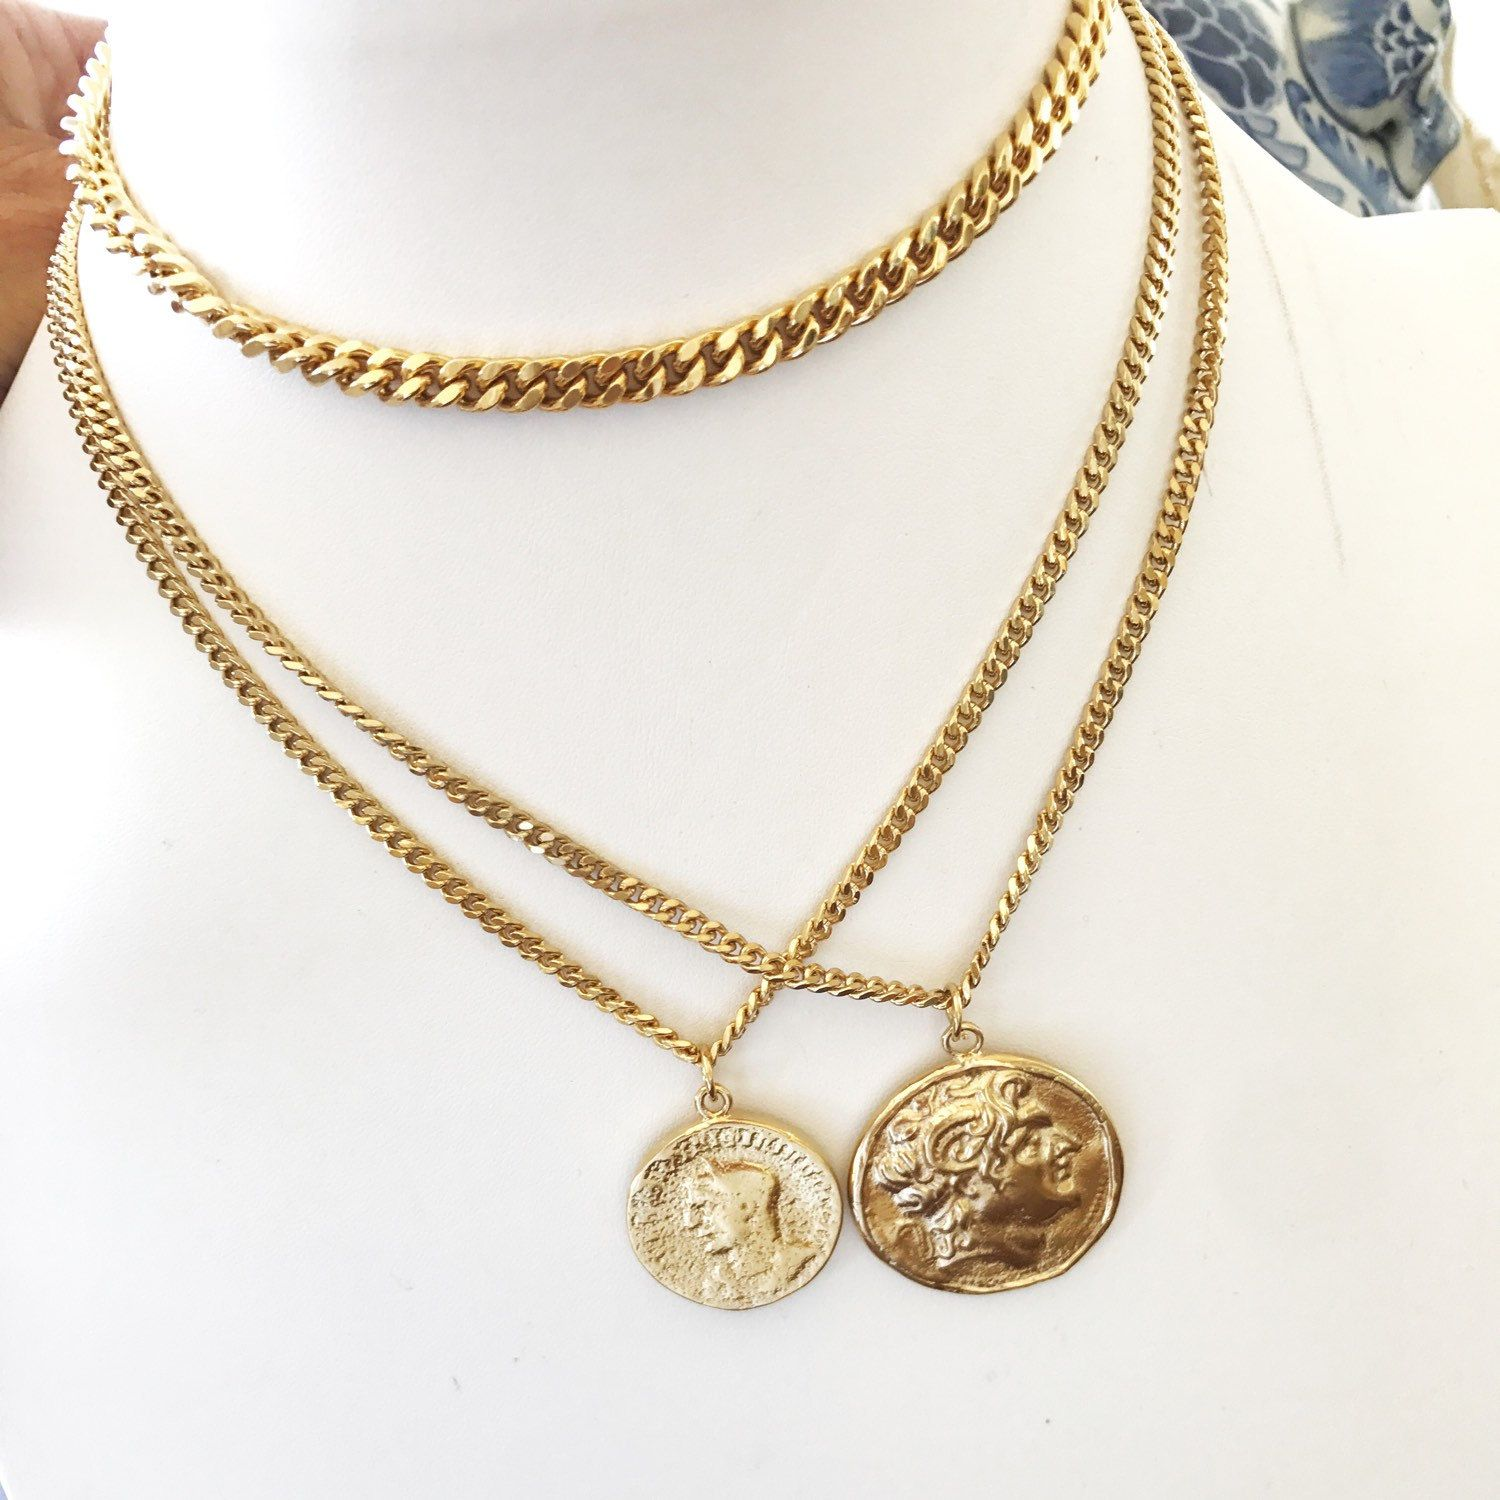 of pendant necklace caribbean aztec coin itm gift gold product cursed pirates description the medallion